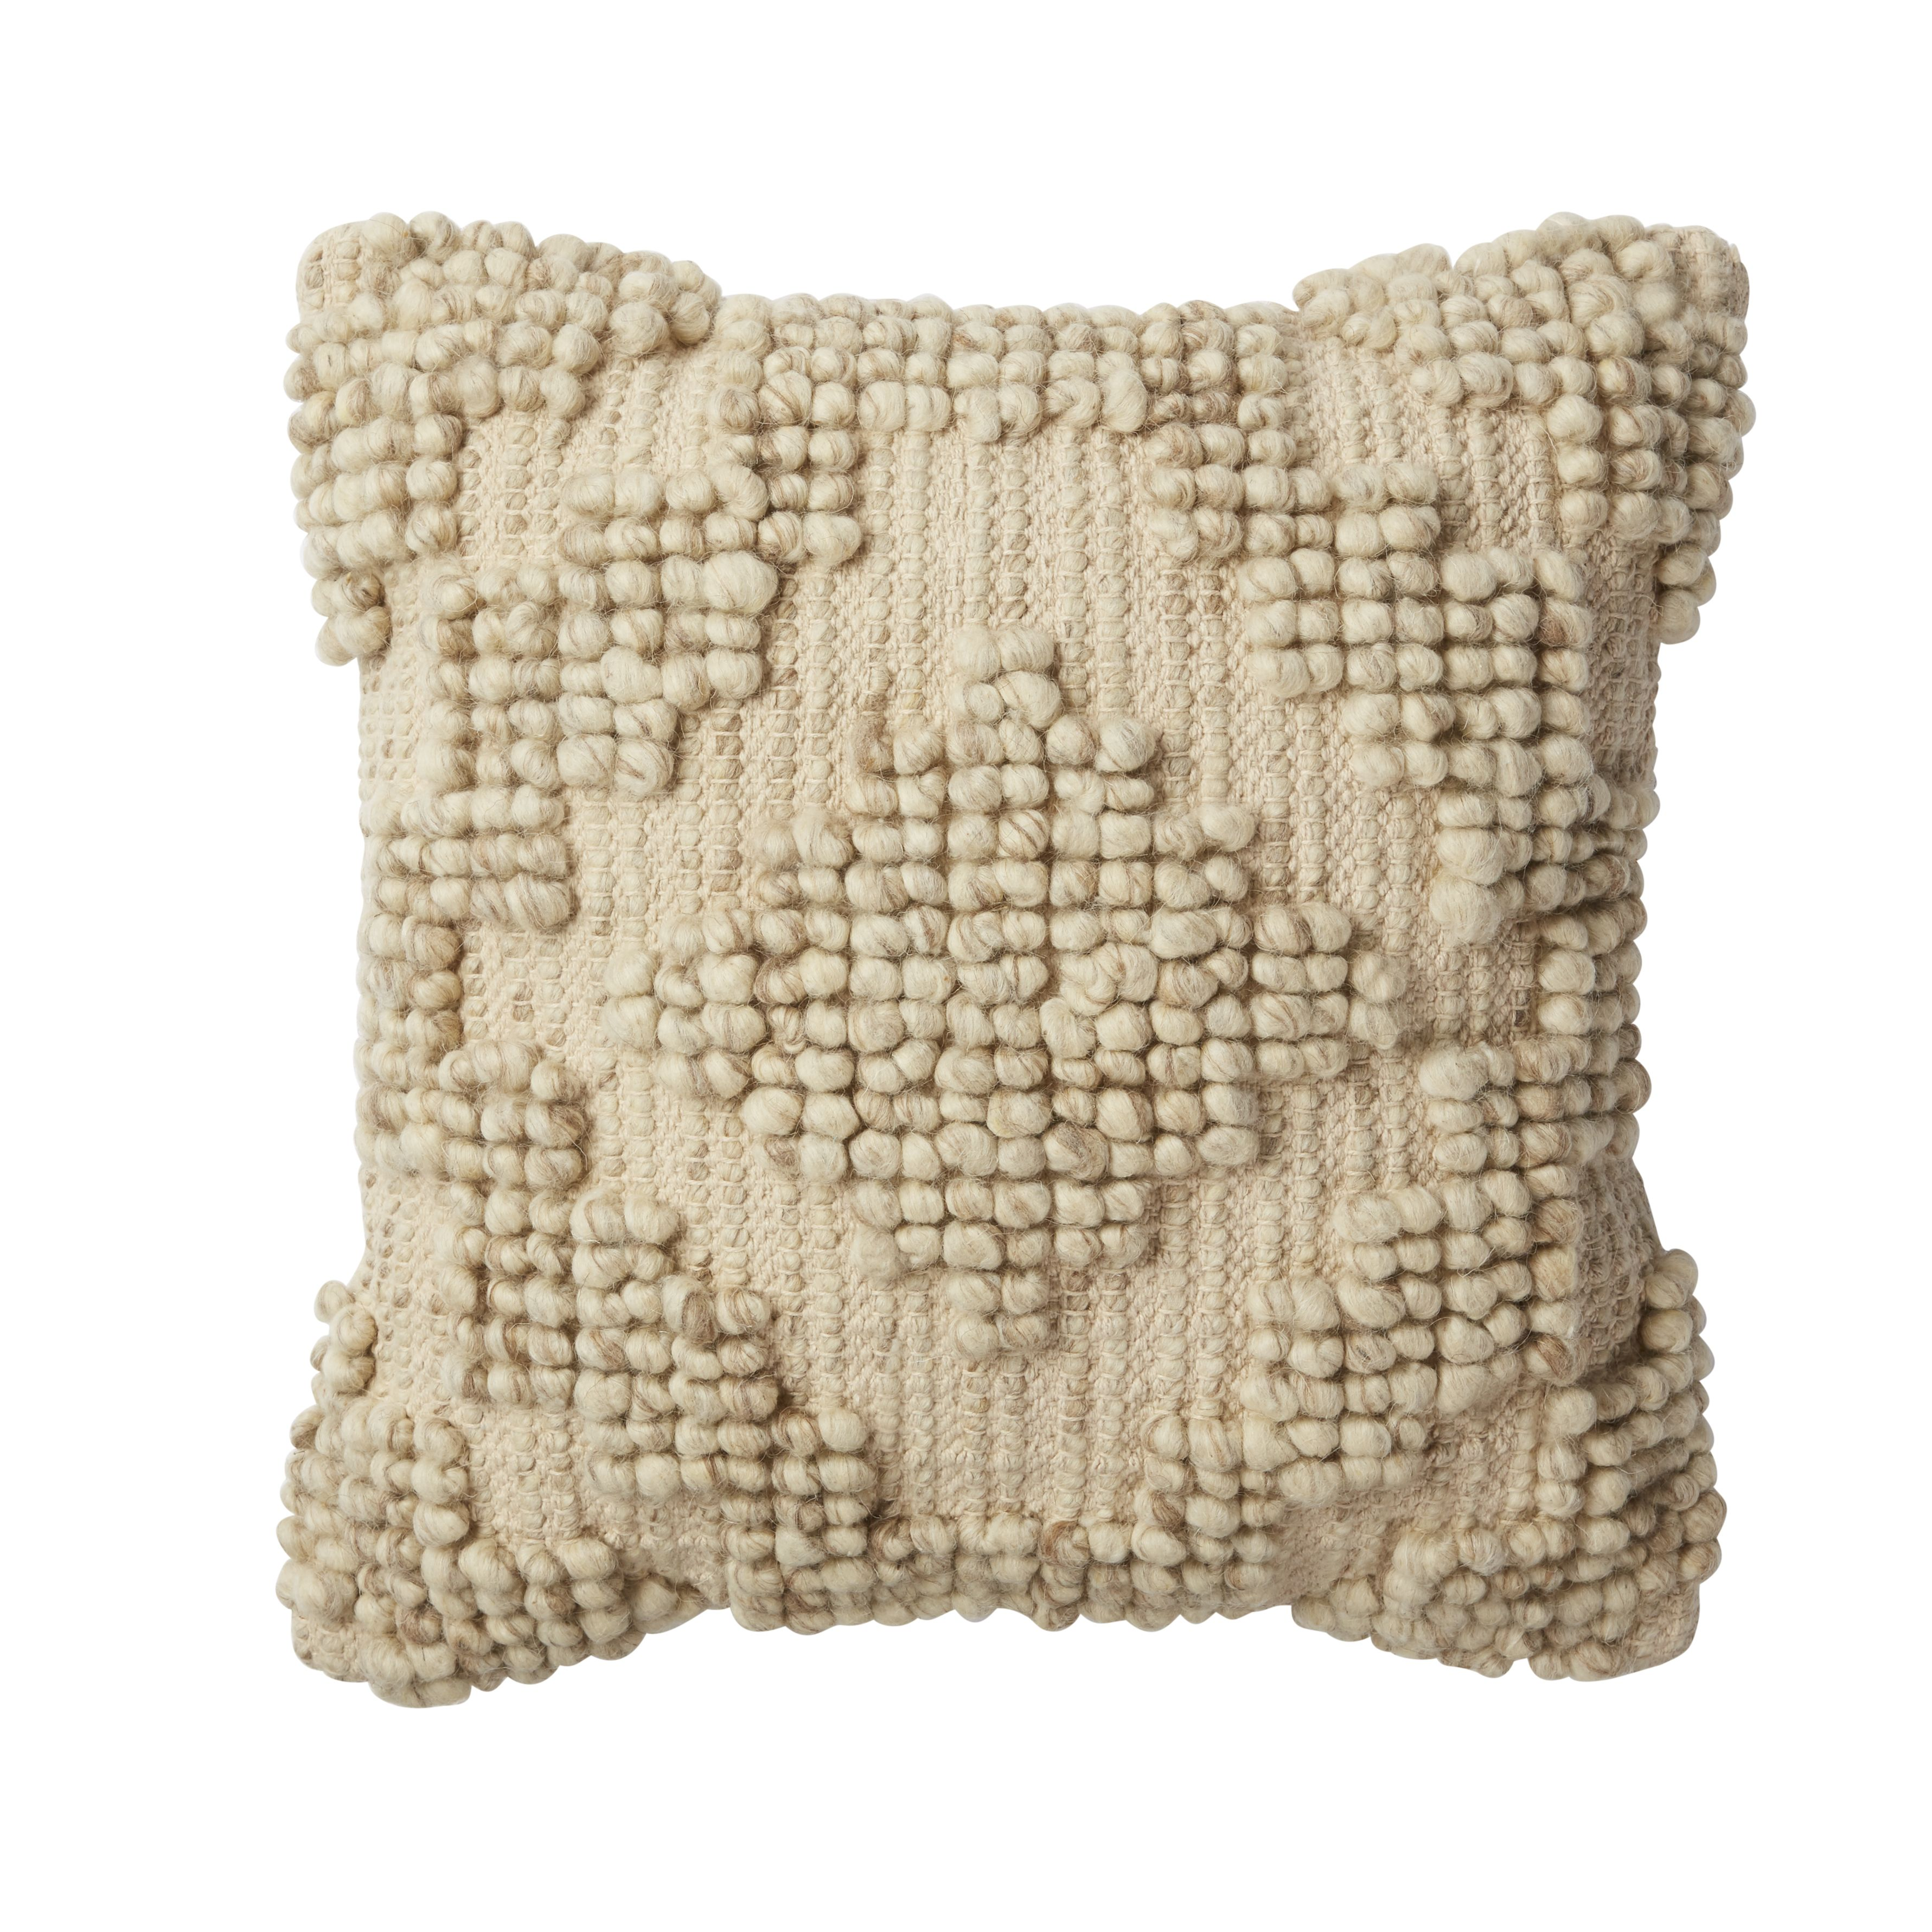 af95bb6fc6819570ae82f1fc522dc602 - Better Homes And Gardens Aztec Cream Decorative Pillow